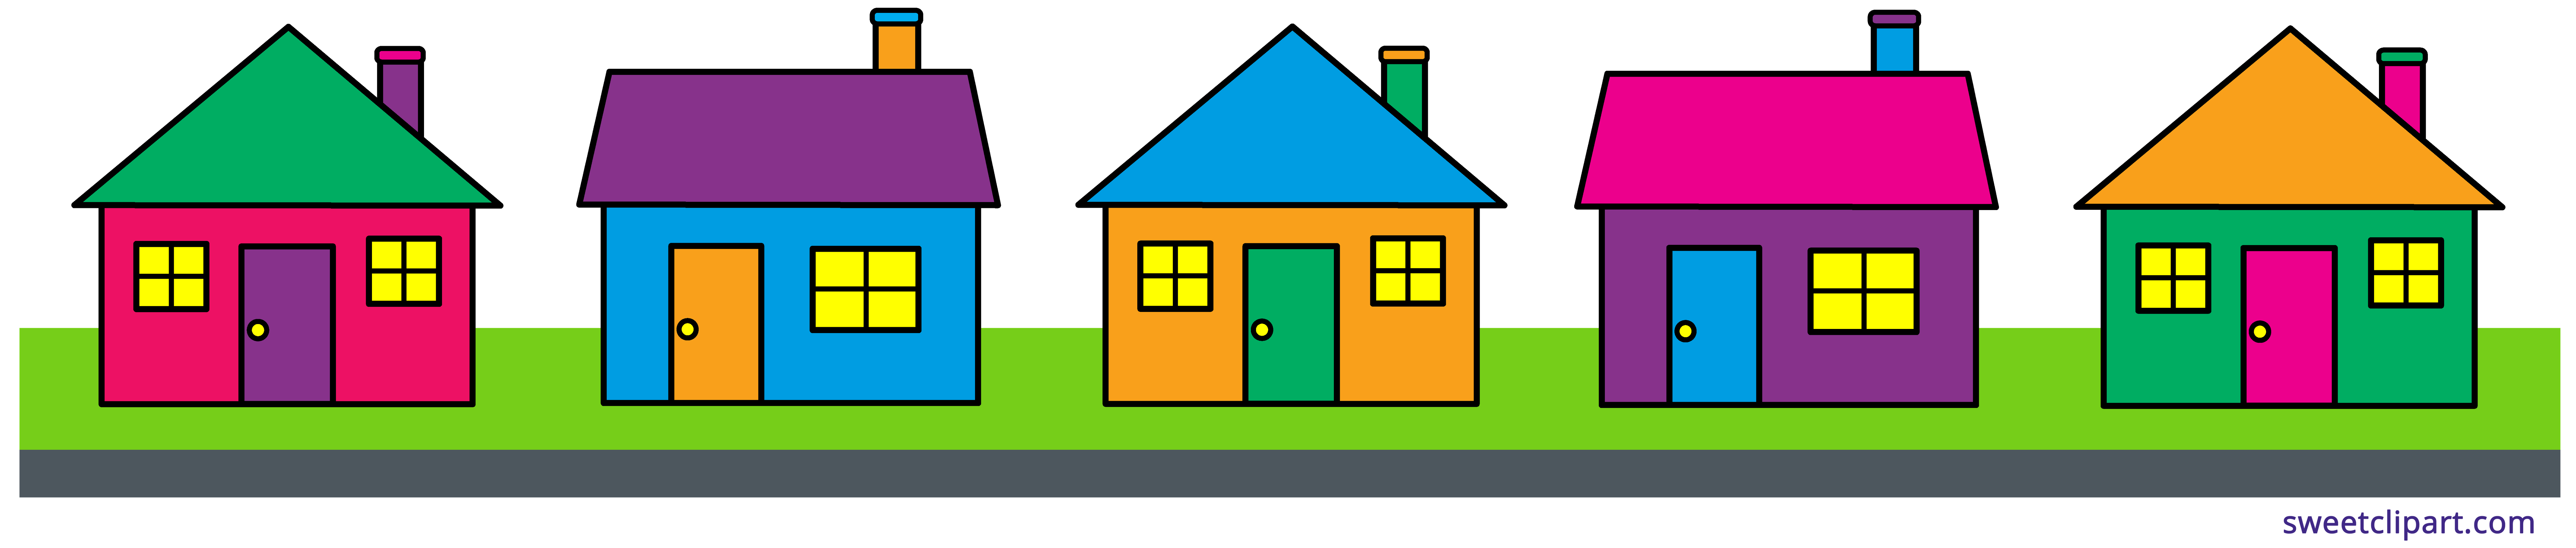 Home clipart neighborhood. All clip art archives